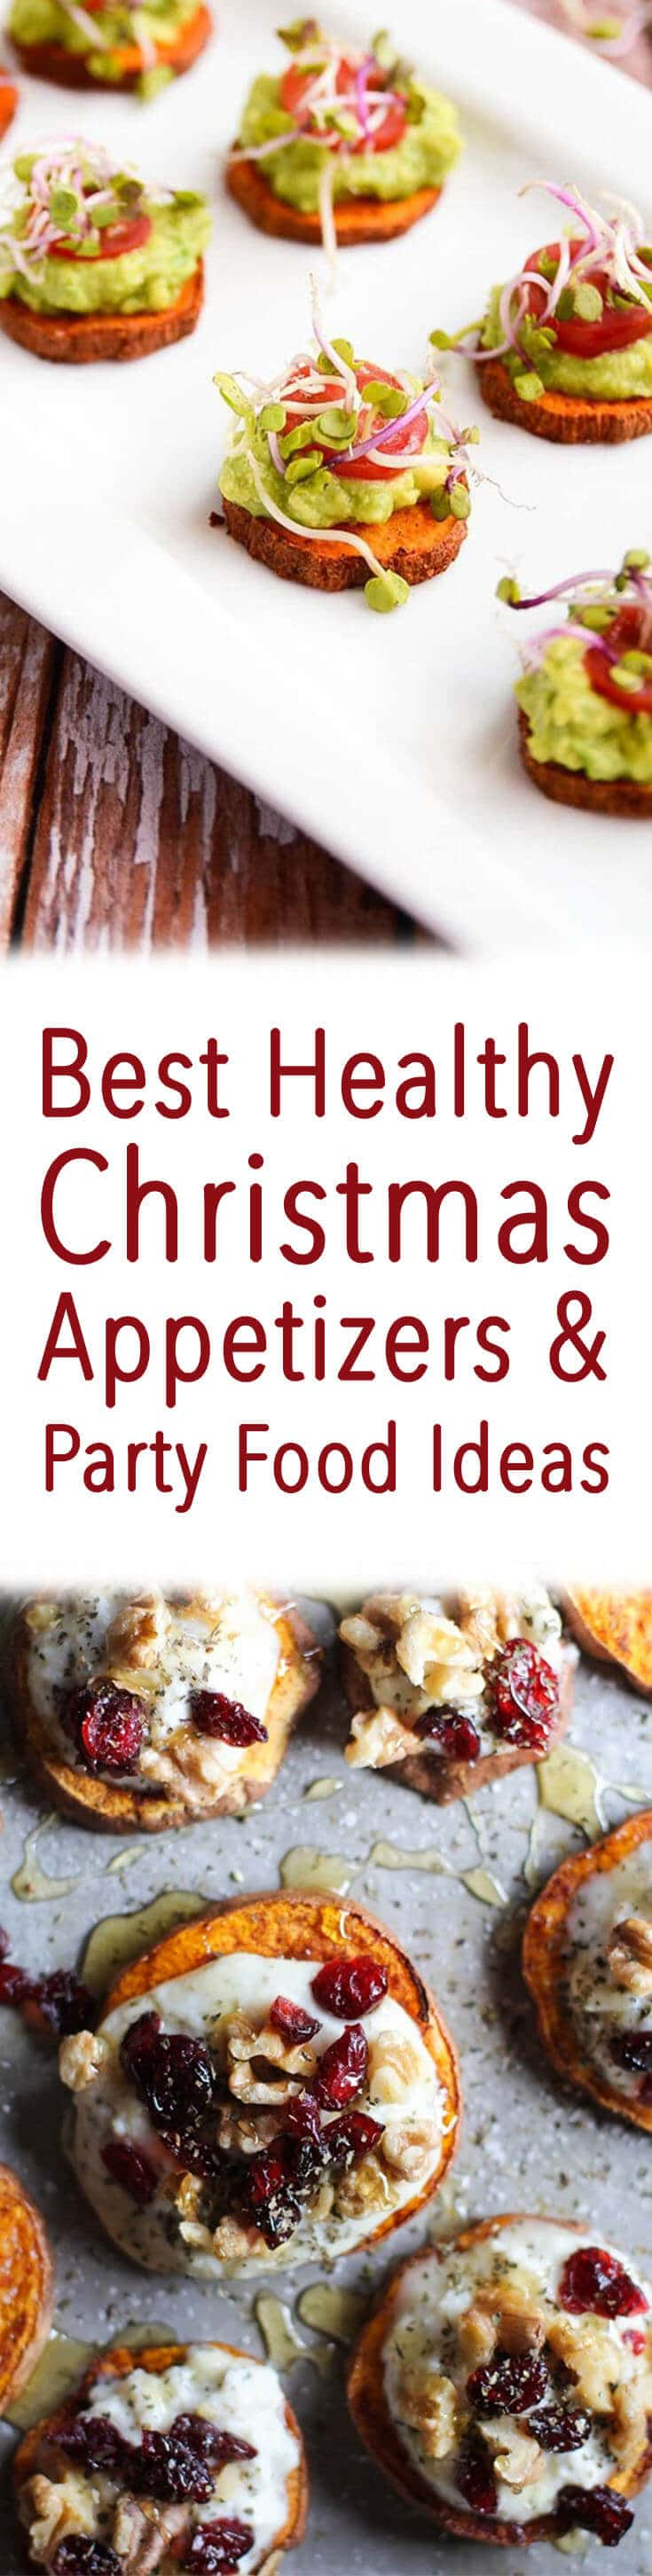 16 Best Healthy Christmas Appetizers Party Food Ideas